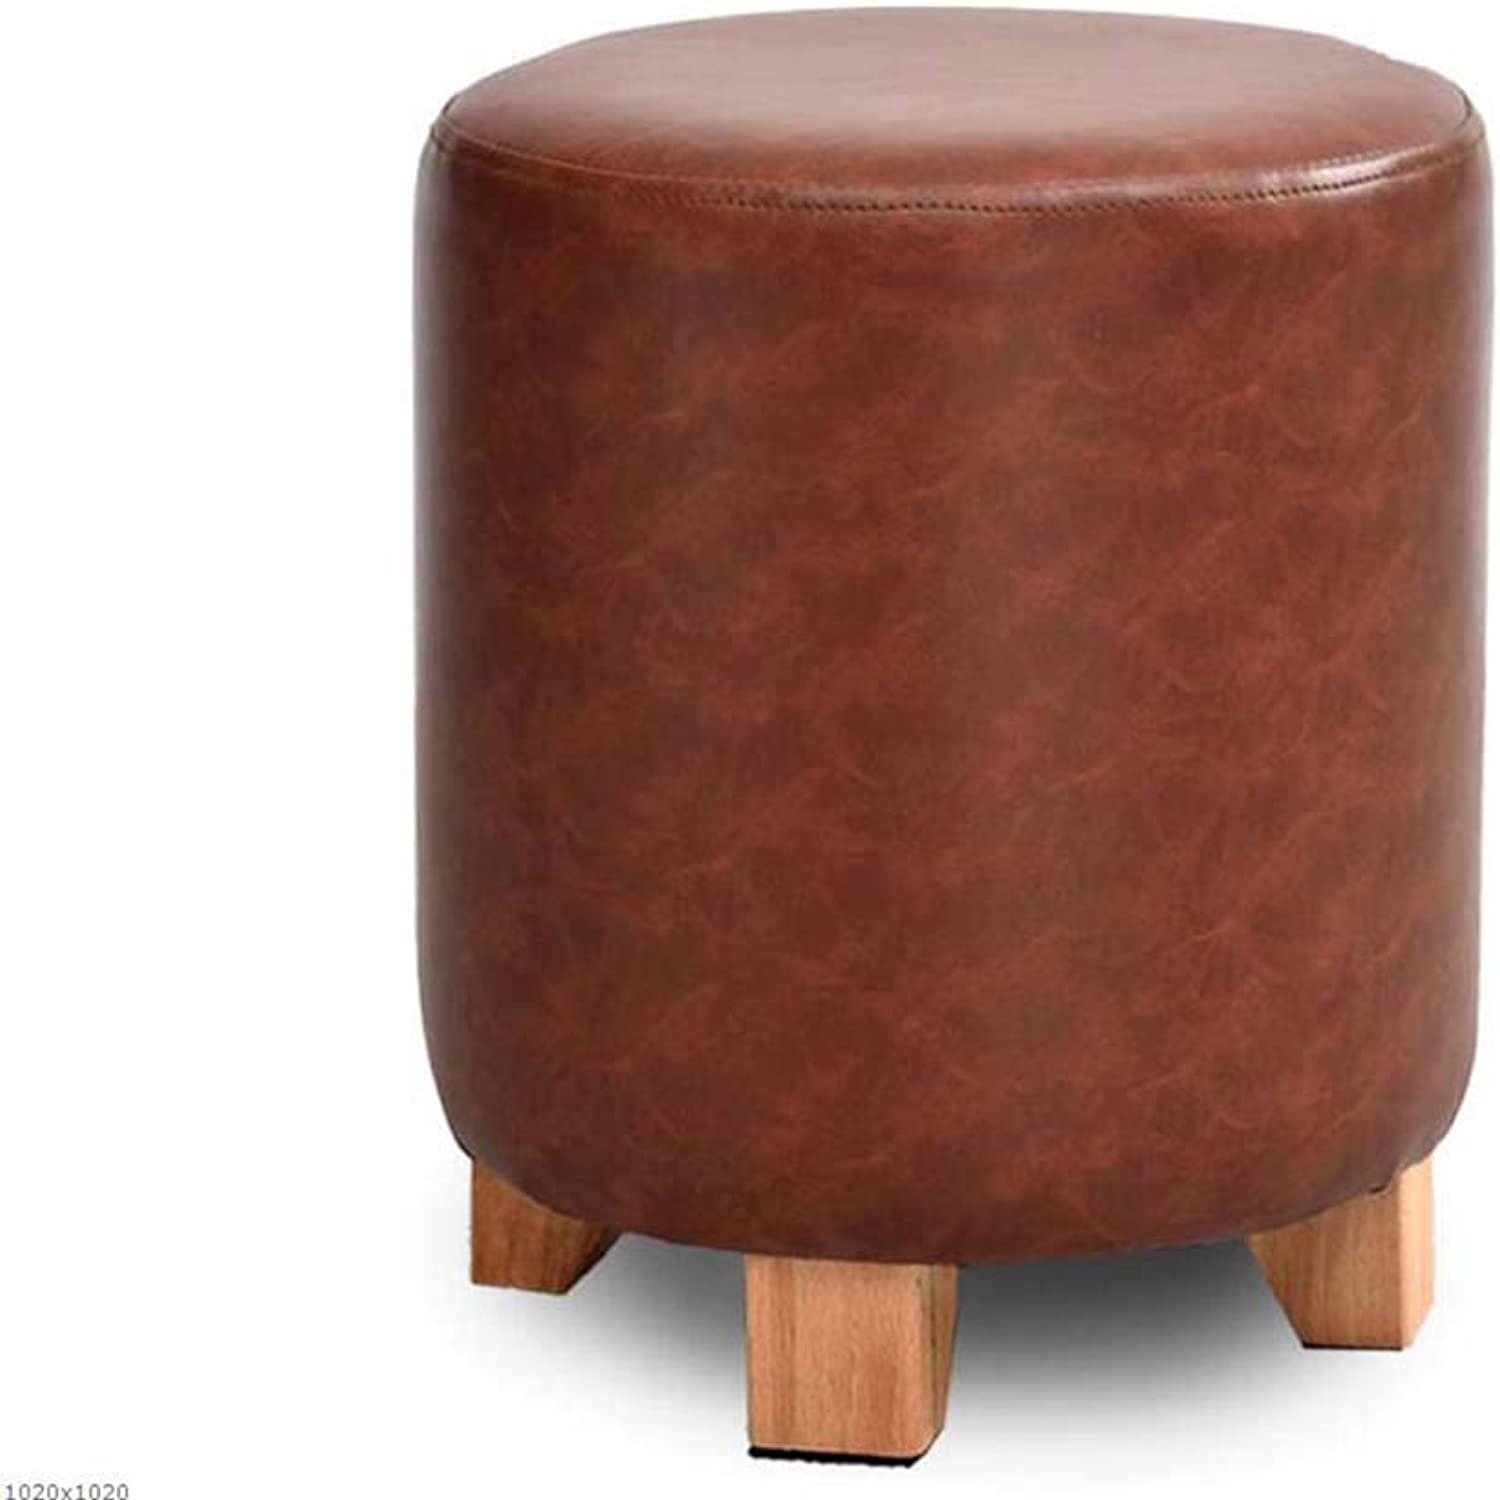 Solid Wood Leather Stool Sofa Stool Stool Stool Dressing Stool Creative shoes Bench shoes Bench,B,Large